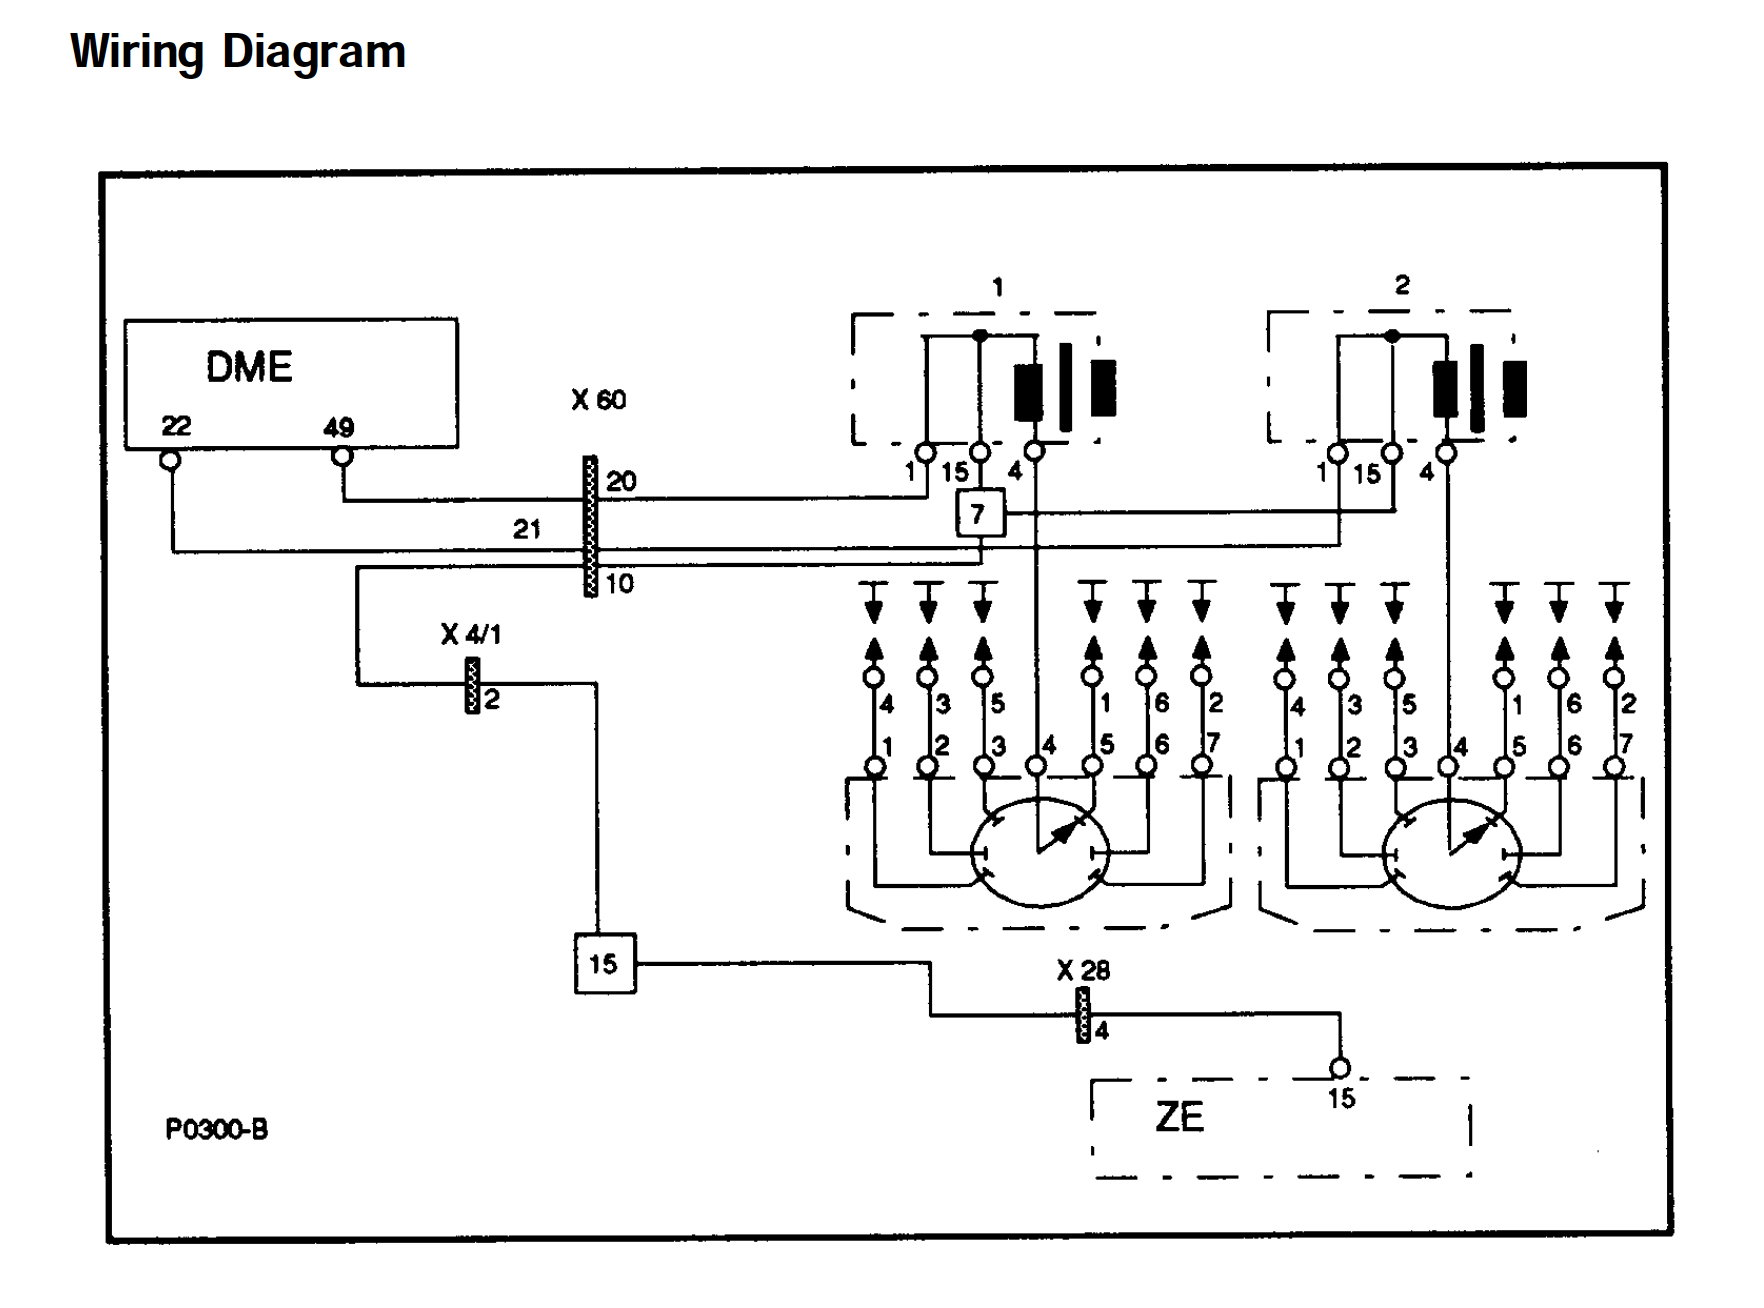 99 Eclipse Coil Wiring Diagram Library. Porsche Ignition Coil Wiring Diagram Reinvent Your \u2022 Basic Chrysler. Mitsubishi. Mitsubishi Lancer 2006 Ignition Coil Diagram At Scoala.co